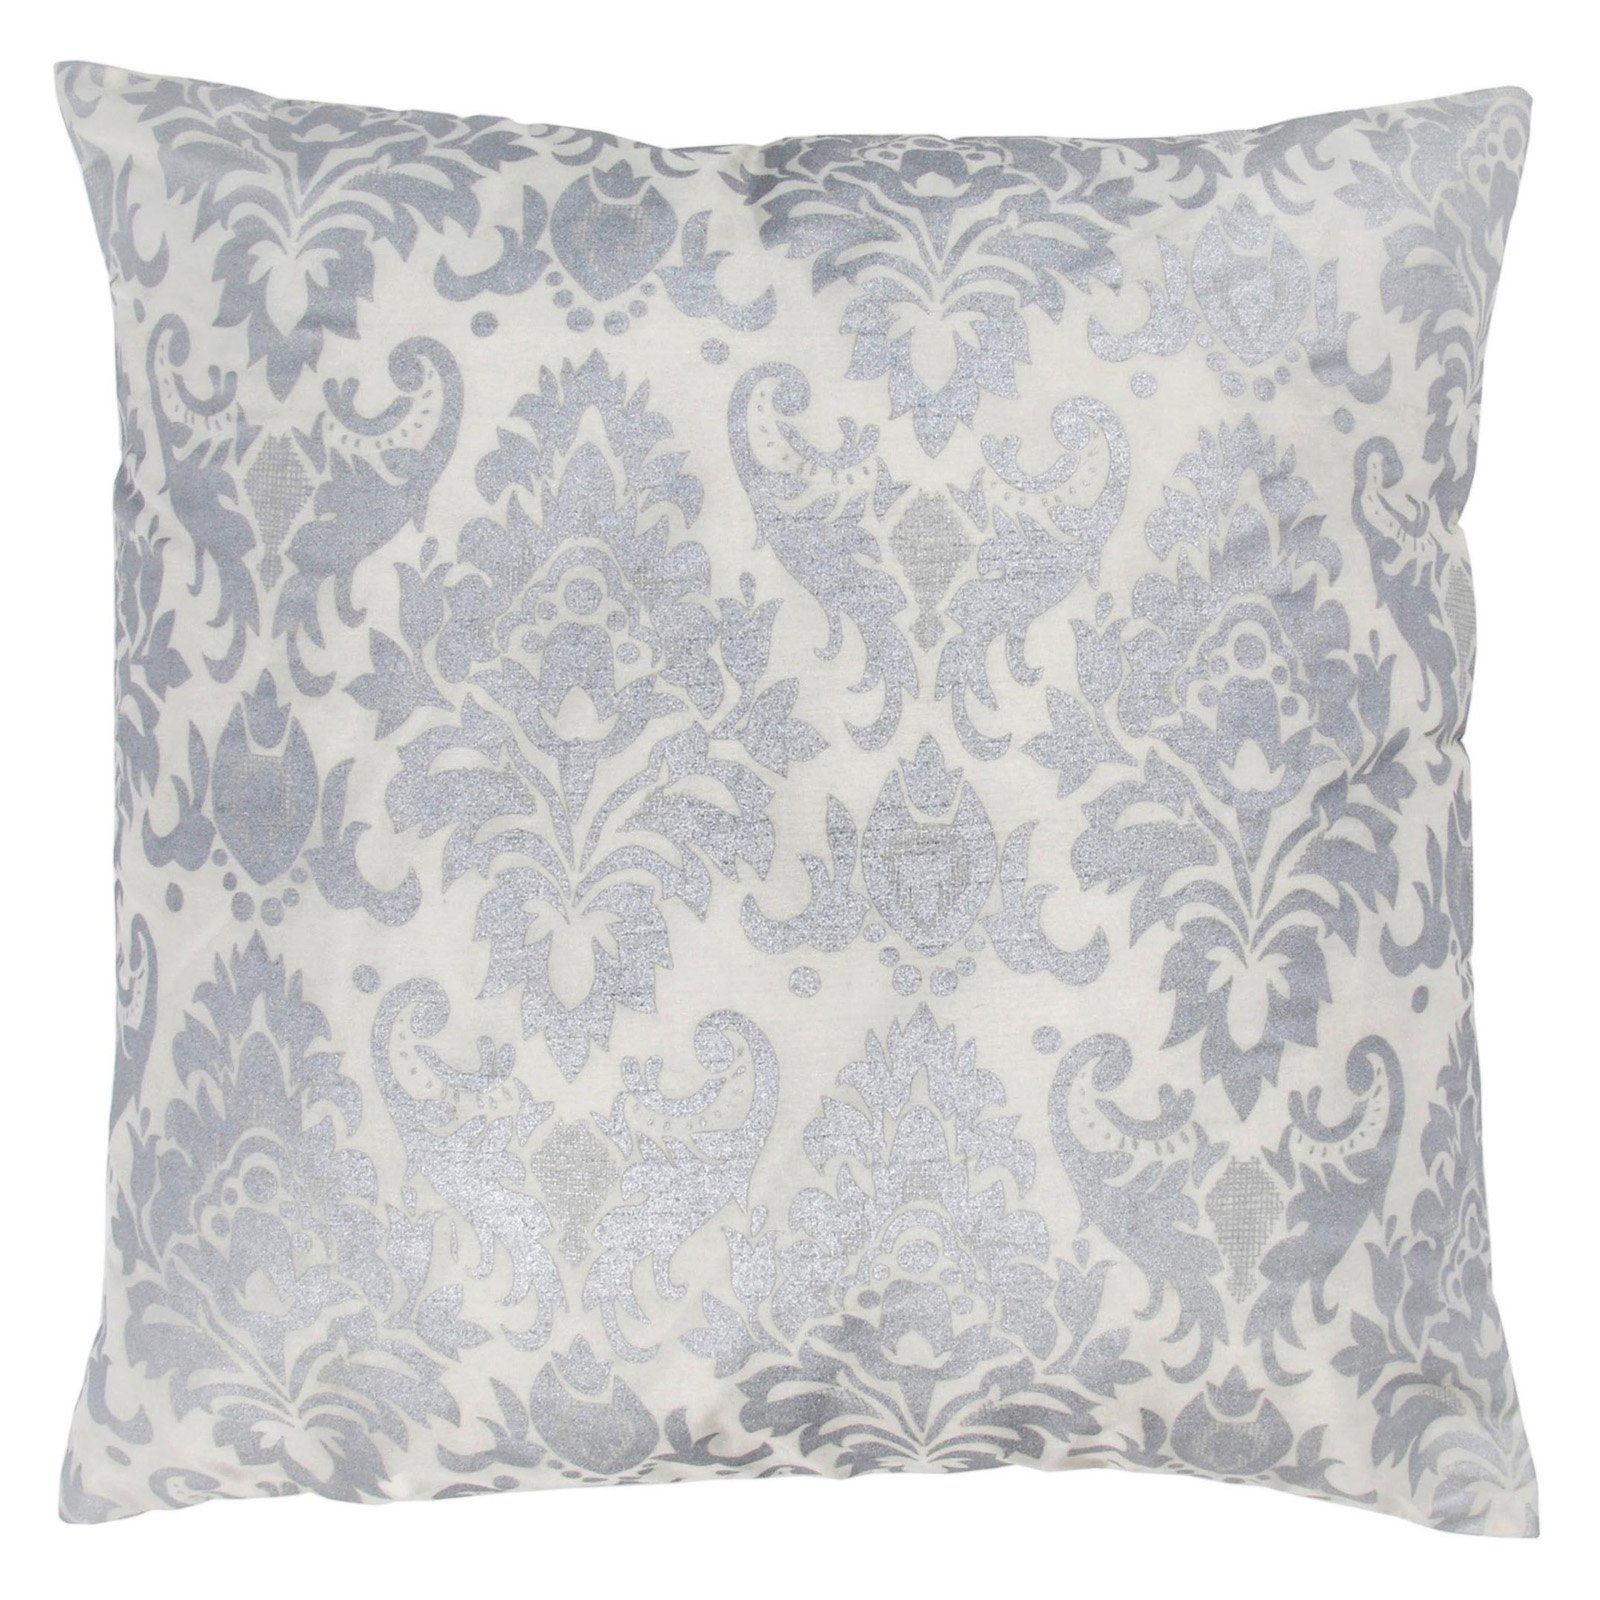 "Rizzy Home damask 18"" x 18""Polyesterdecorative filled pillow"